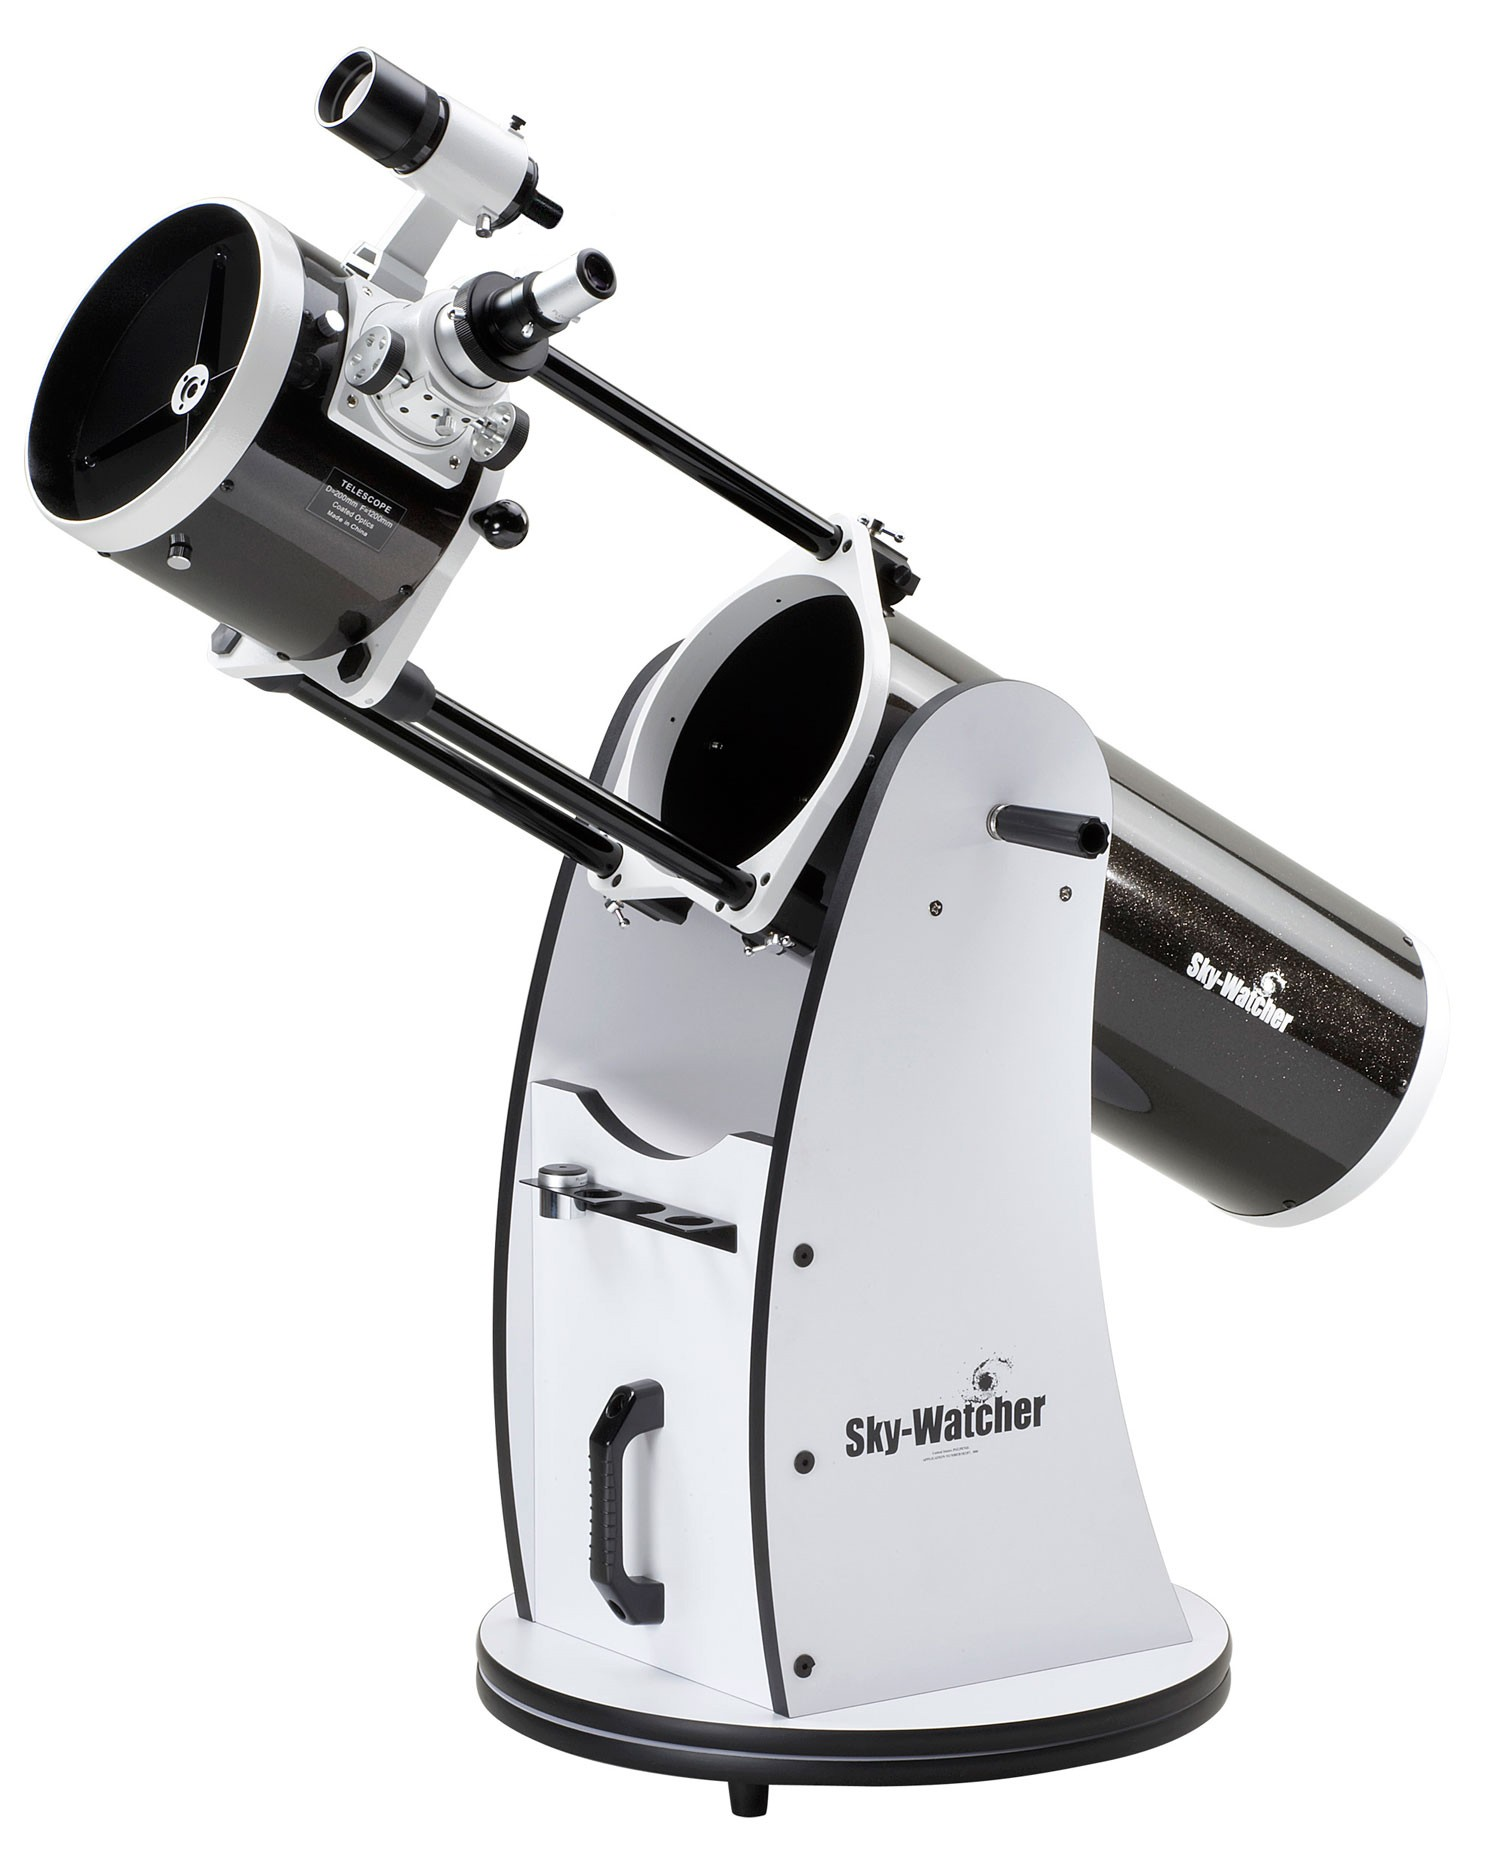 Skywatcher 8″ Collapsible Dobsonian Telescope